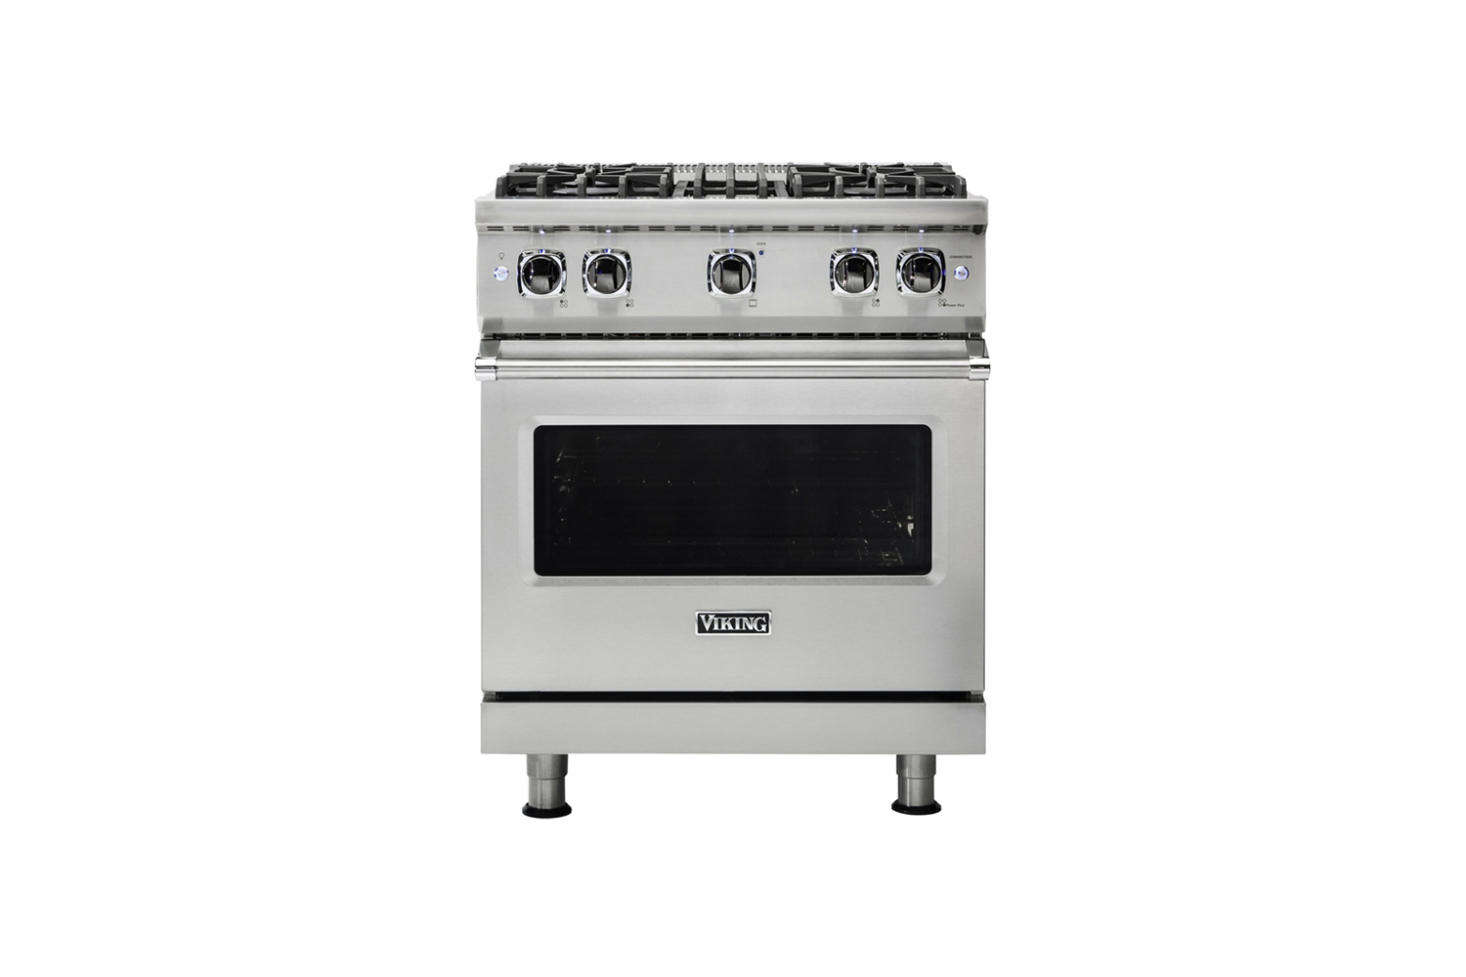 The Viking Professional 5 Series (VGR5304BSSLP) 30-Inch Freestanding Gas Range is $4,849 at AJ Madison.